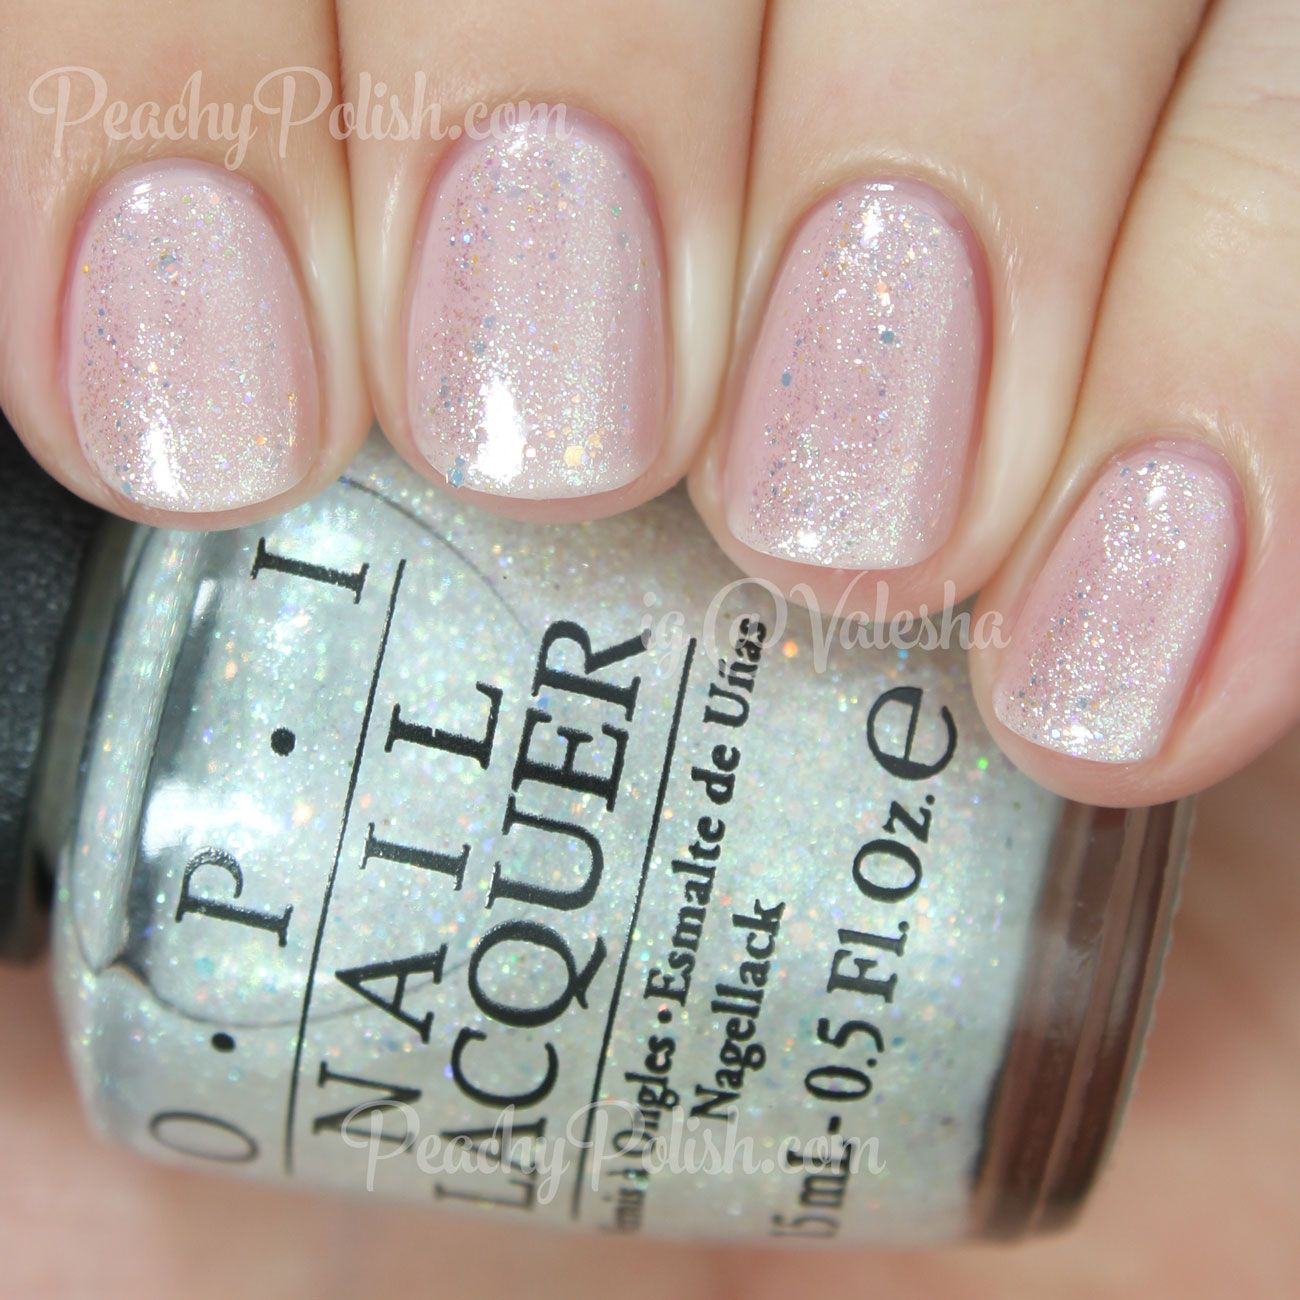 Opi 2017 Soft Shades Collection Make Light Of The Situation Is A Super Shimmery Iridescent Glitter Topper In Clear Base